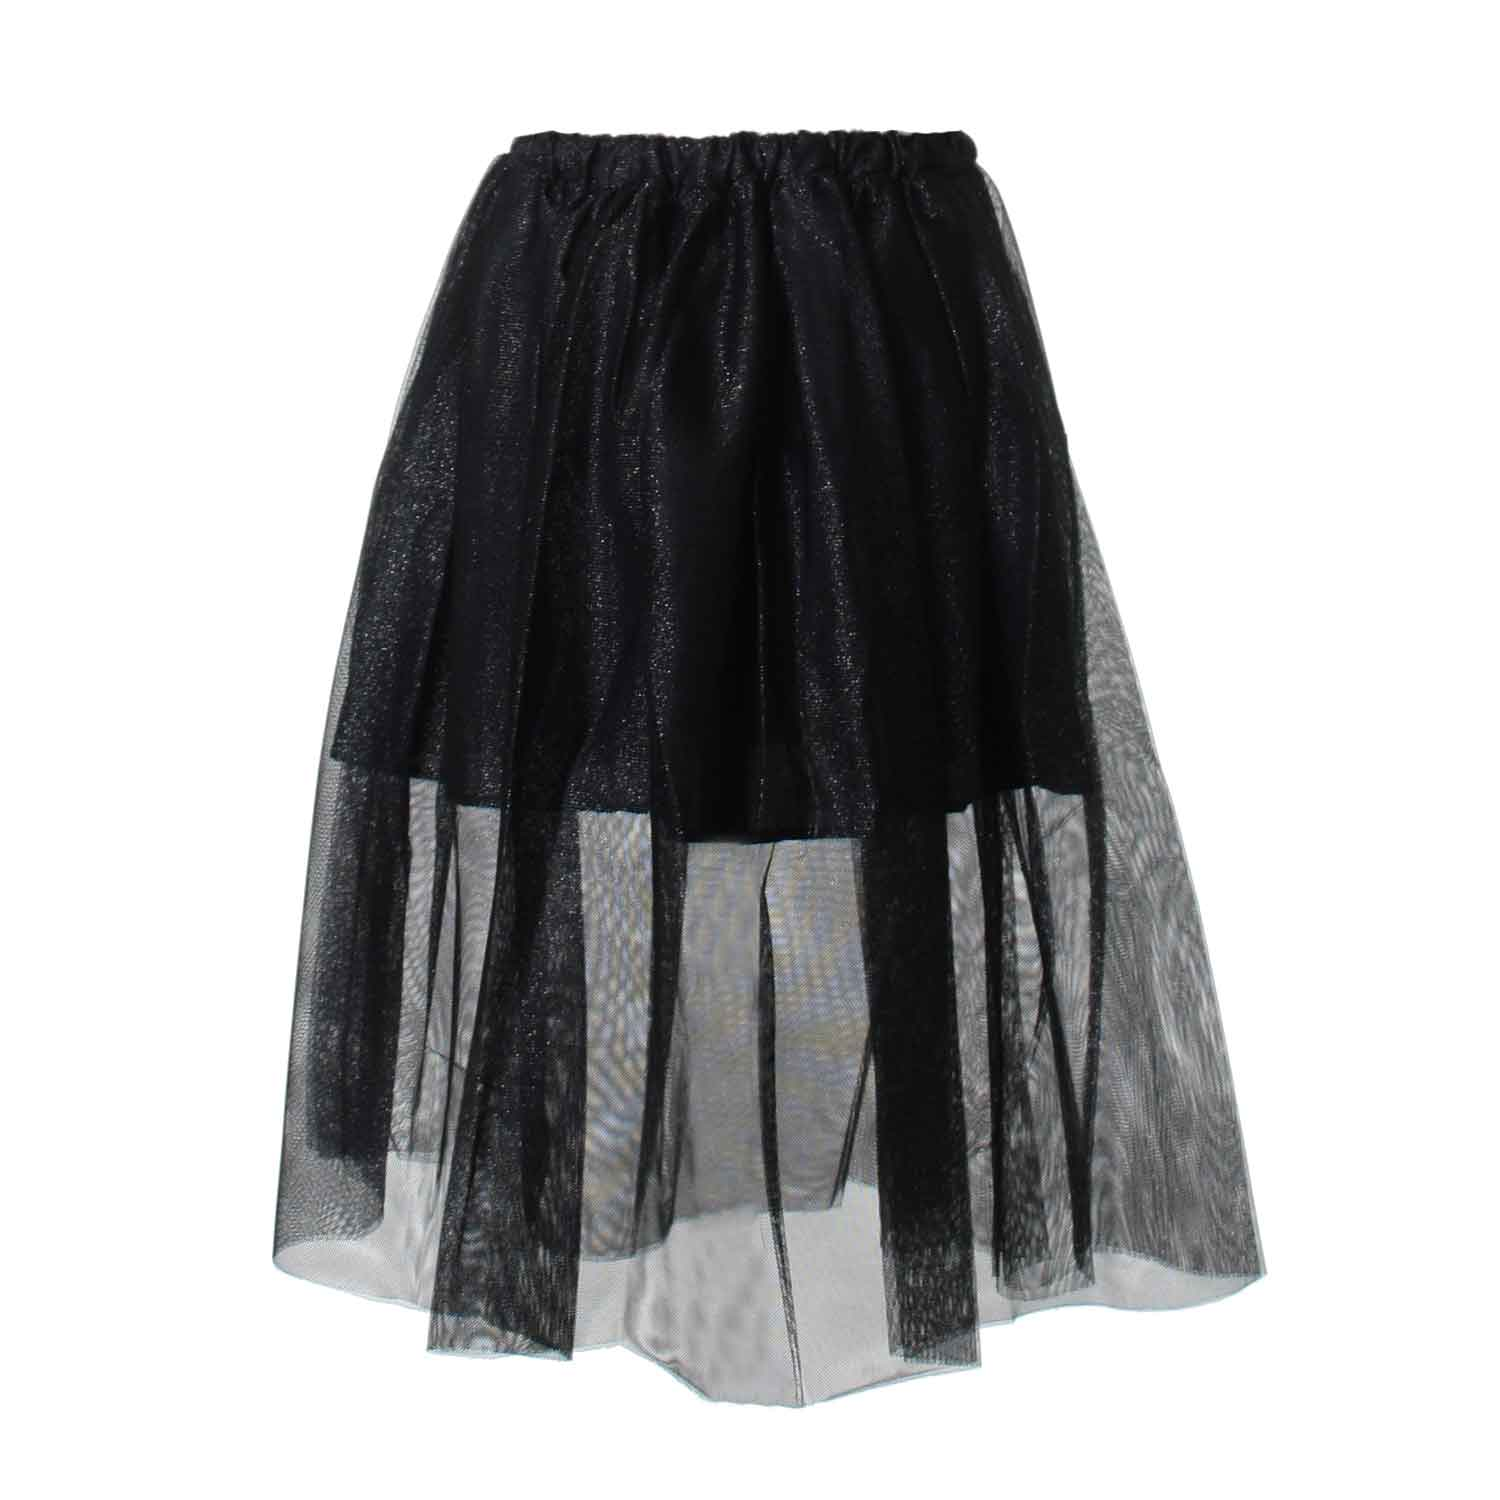 innovative design 7118d 8355b Gonna Tulle Nero Argento